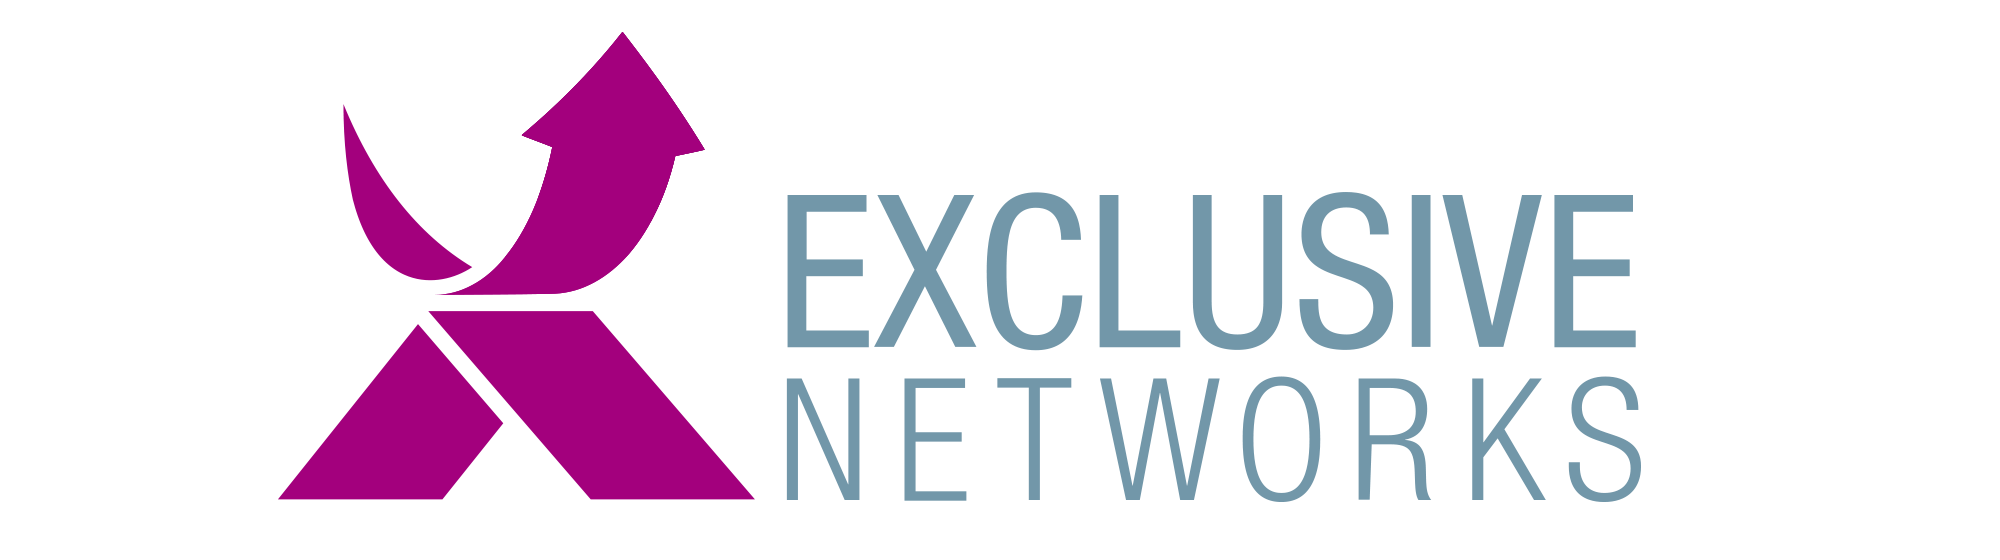 exclusive-networks-logo